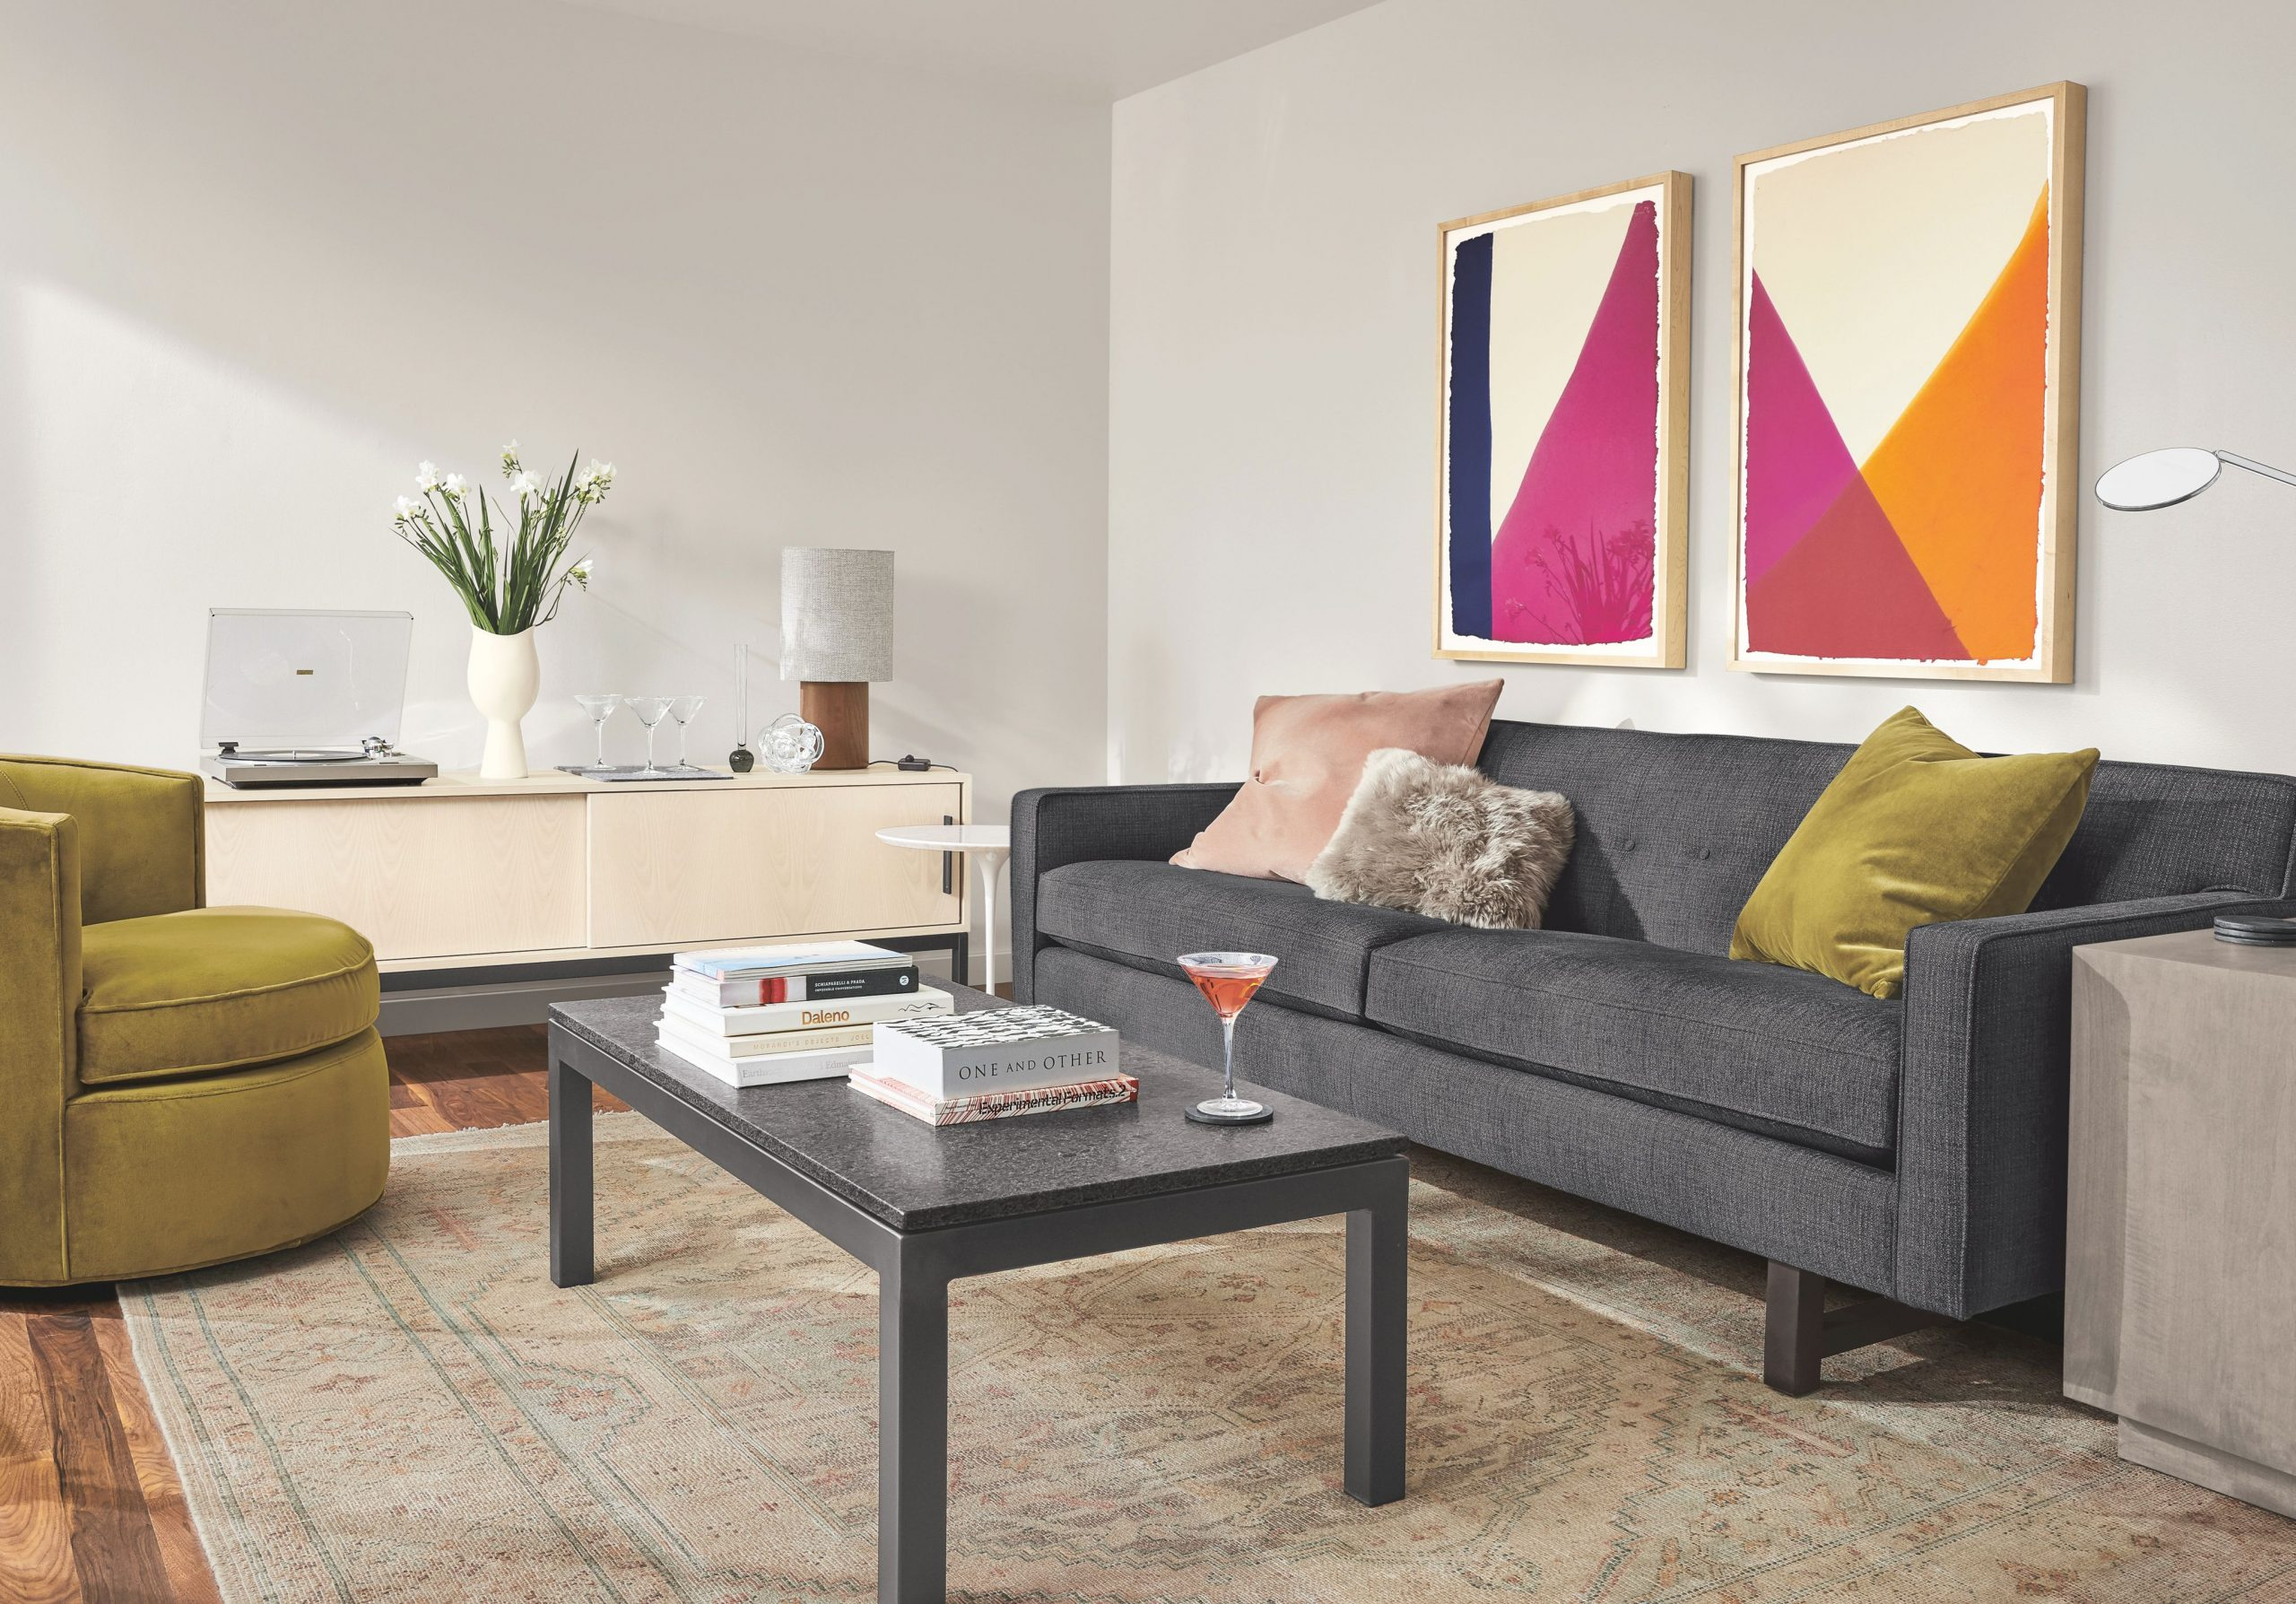 Decorating Ideas For A Small Living Room - Room & Board throughout Unique Ideas Of Decorating Small Living Room